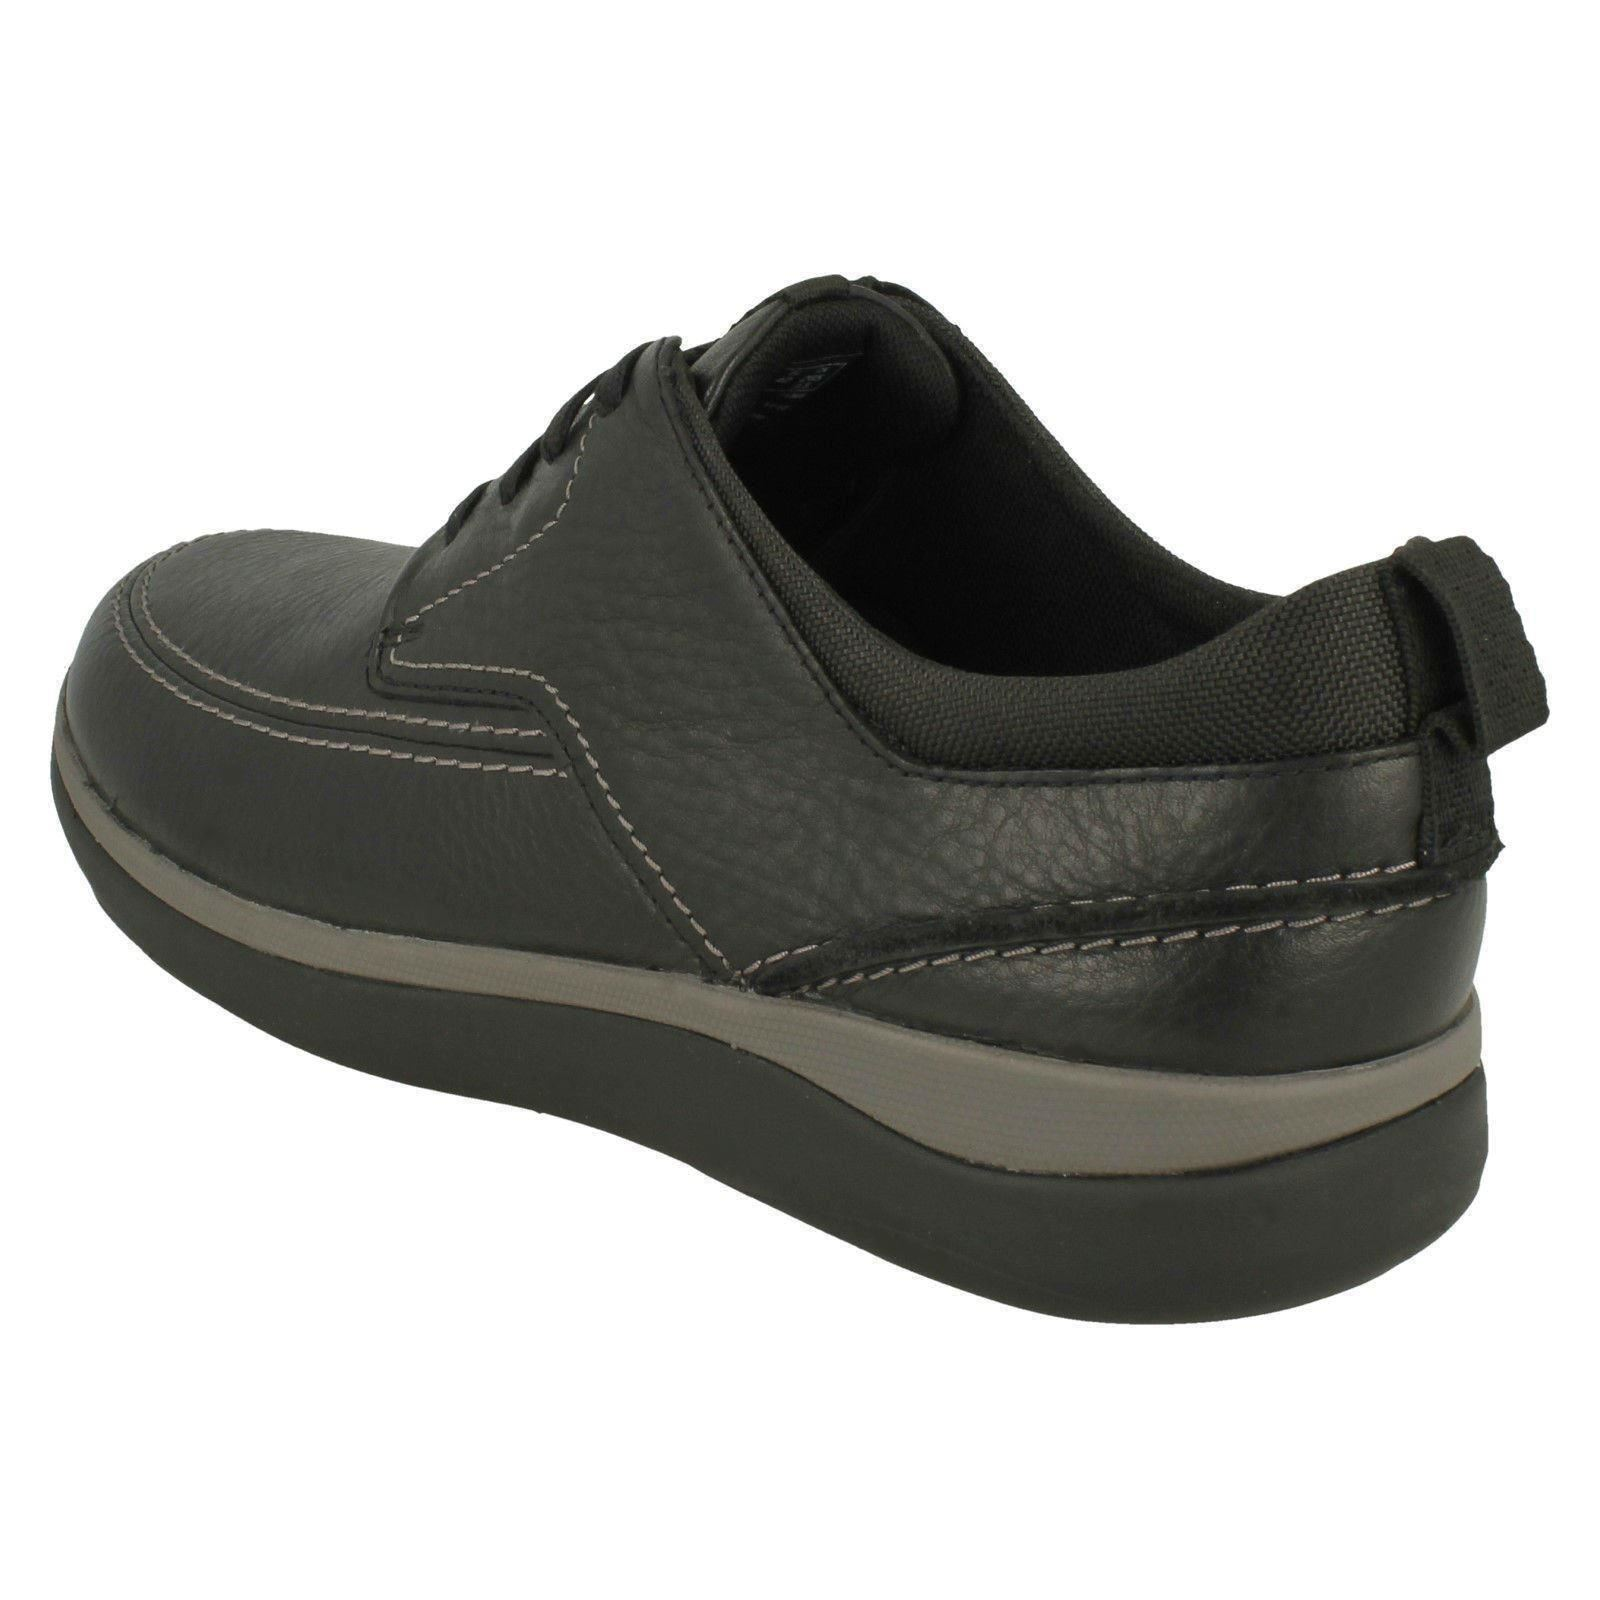 Mens-Unstructured-by-Clarks-Lace-Up-Shoes-039-Garratt-Street-039 thumbnail 4